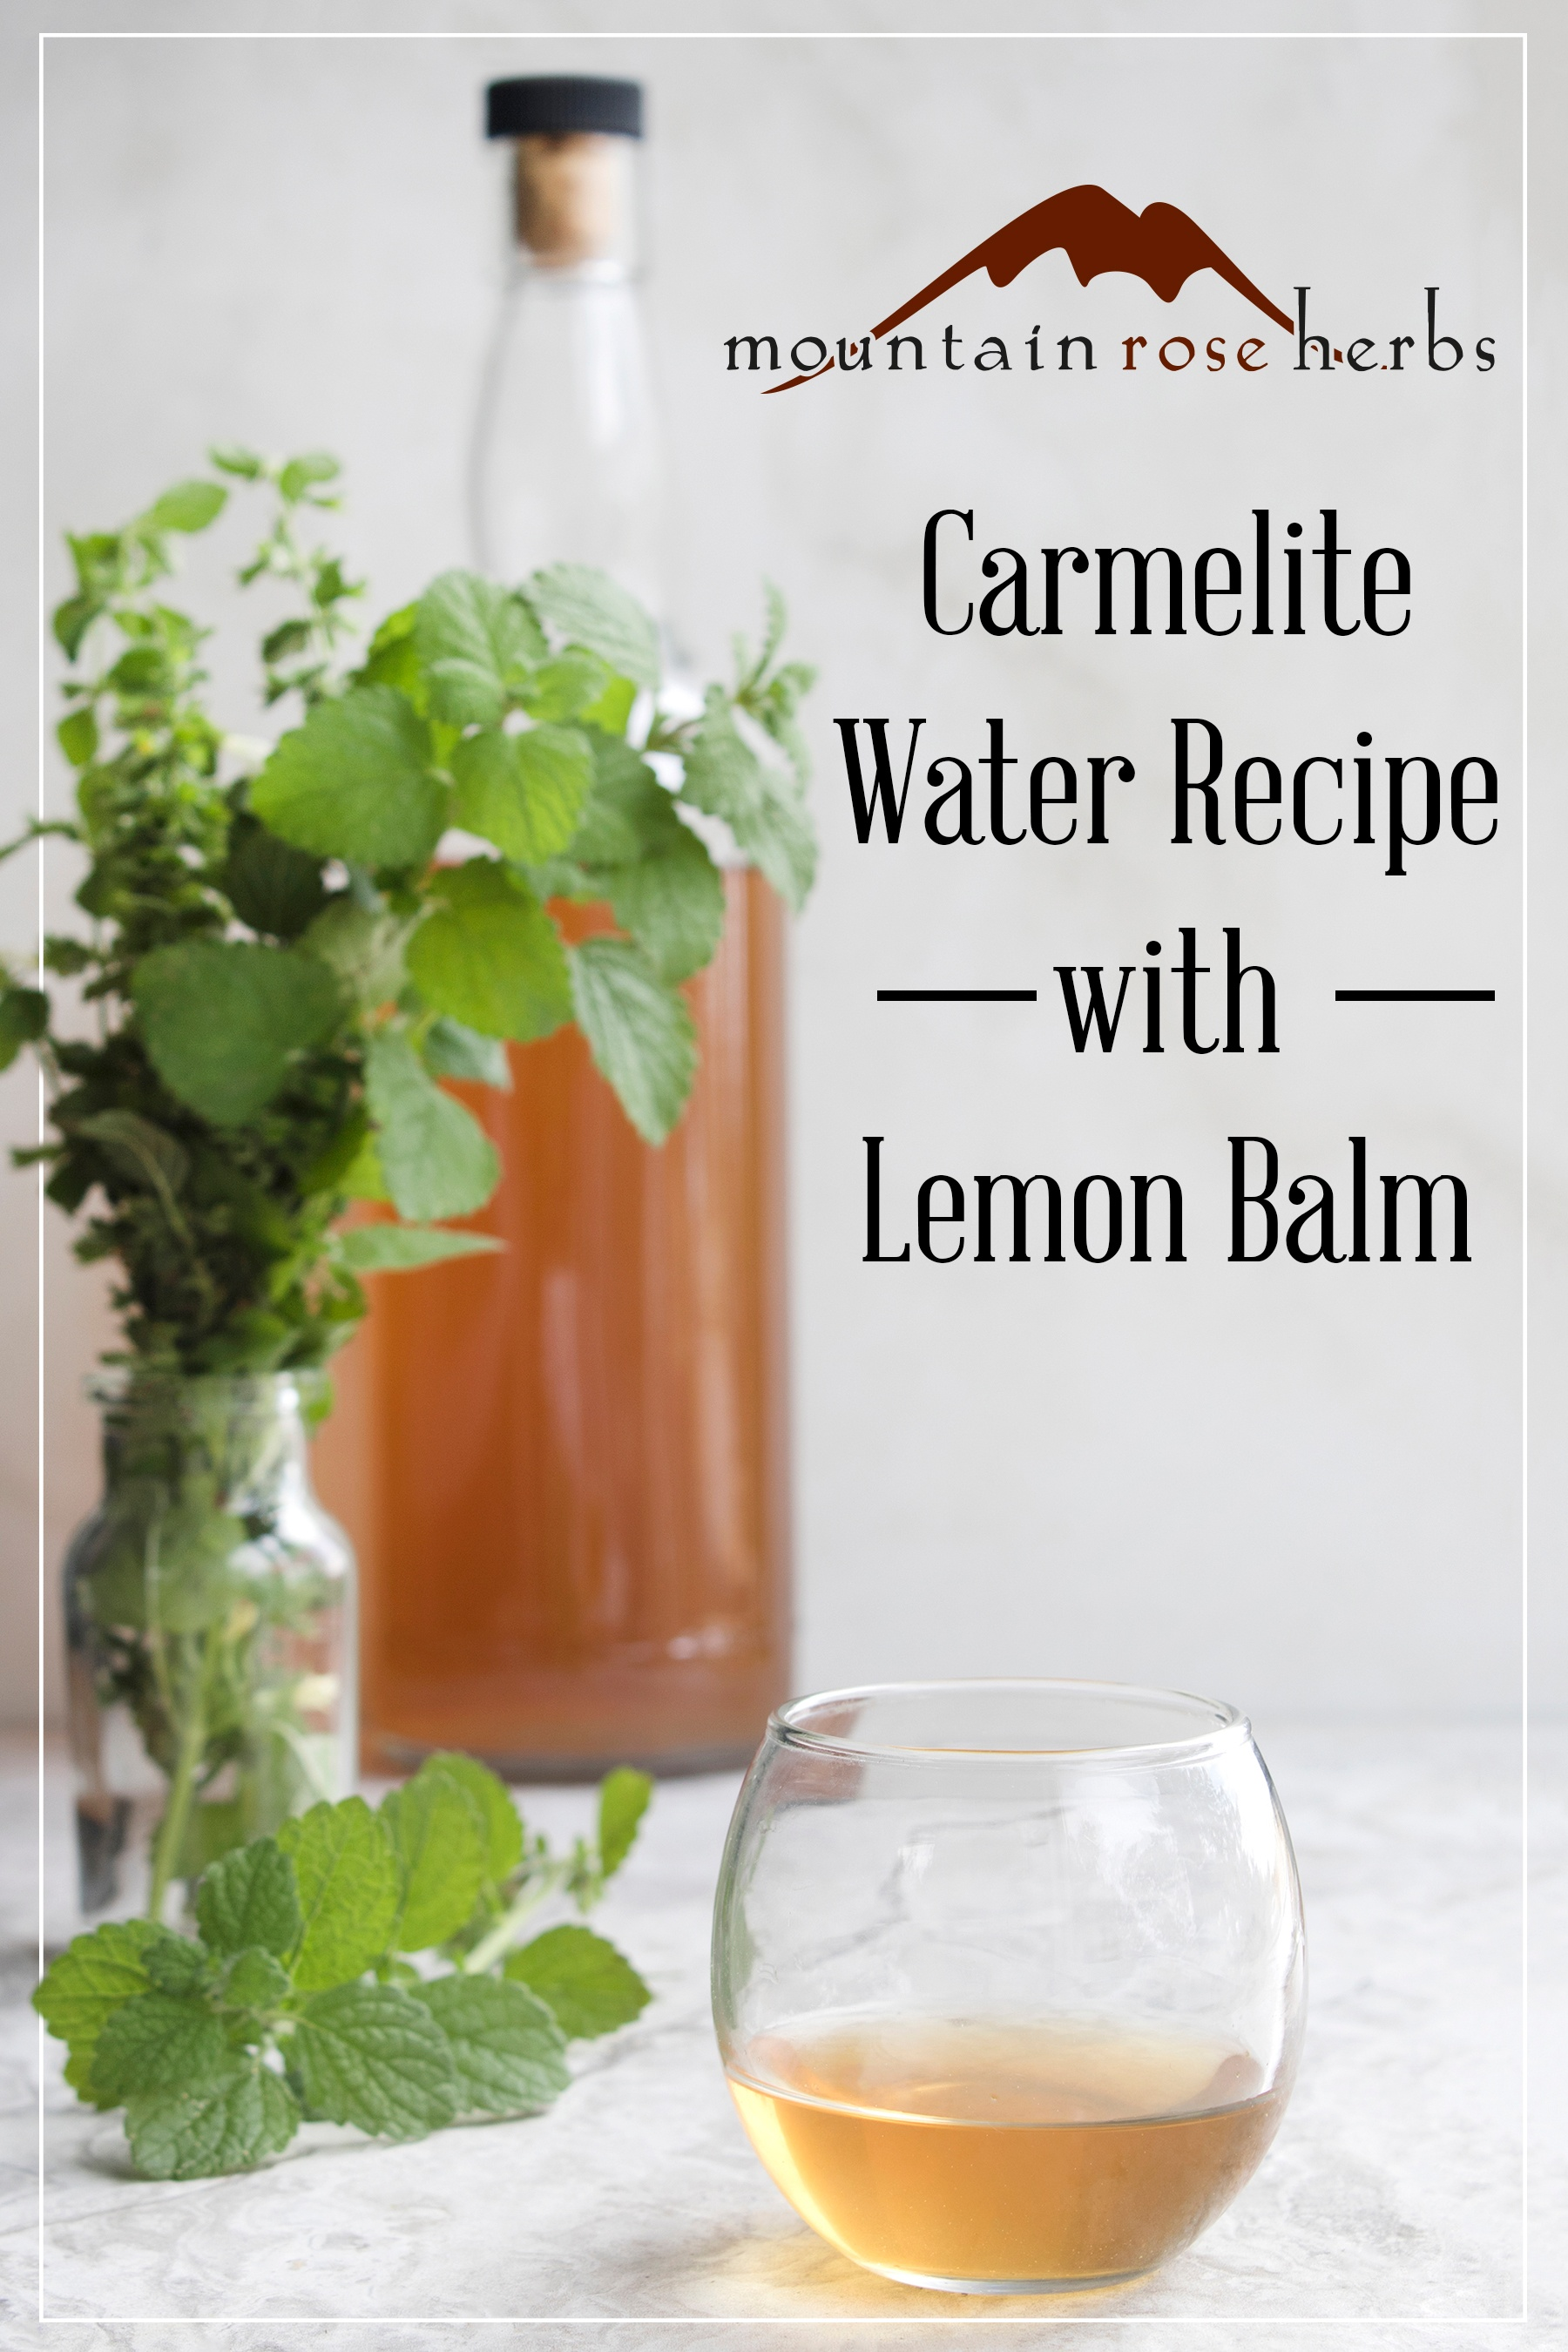 Carmelite water recipe Pin for Pinterest from Mountain Rose Herbs